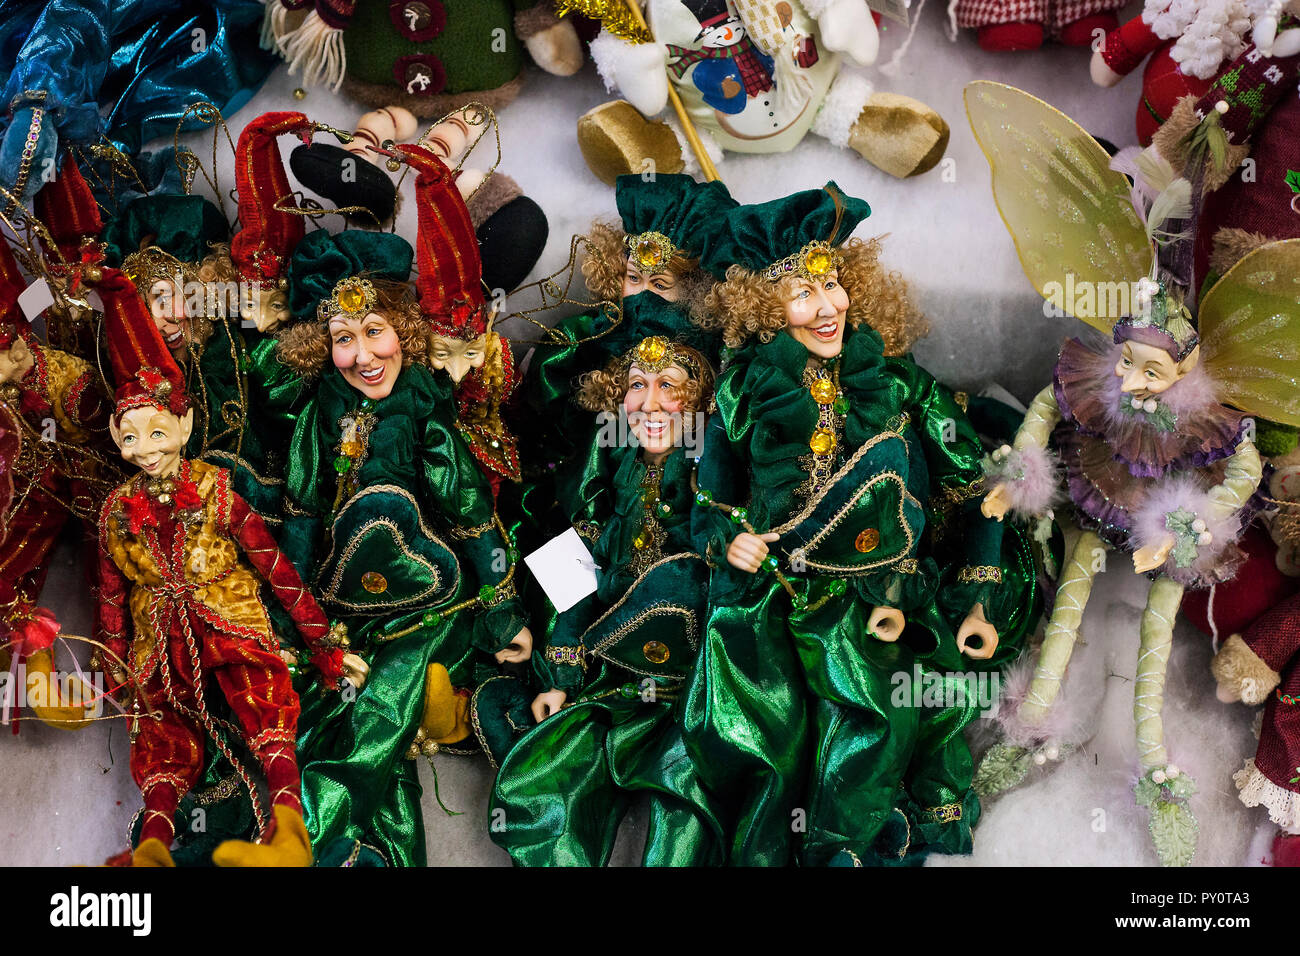 Figures of elves sold at Christmas Fair. Toy shop with porcelain dolls for kids, holidays market - Stock Image